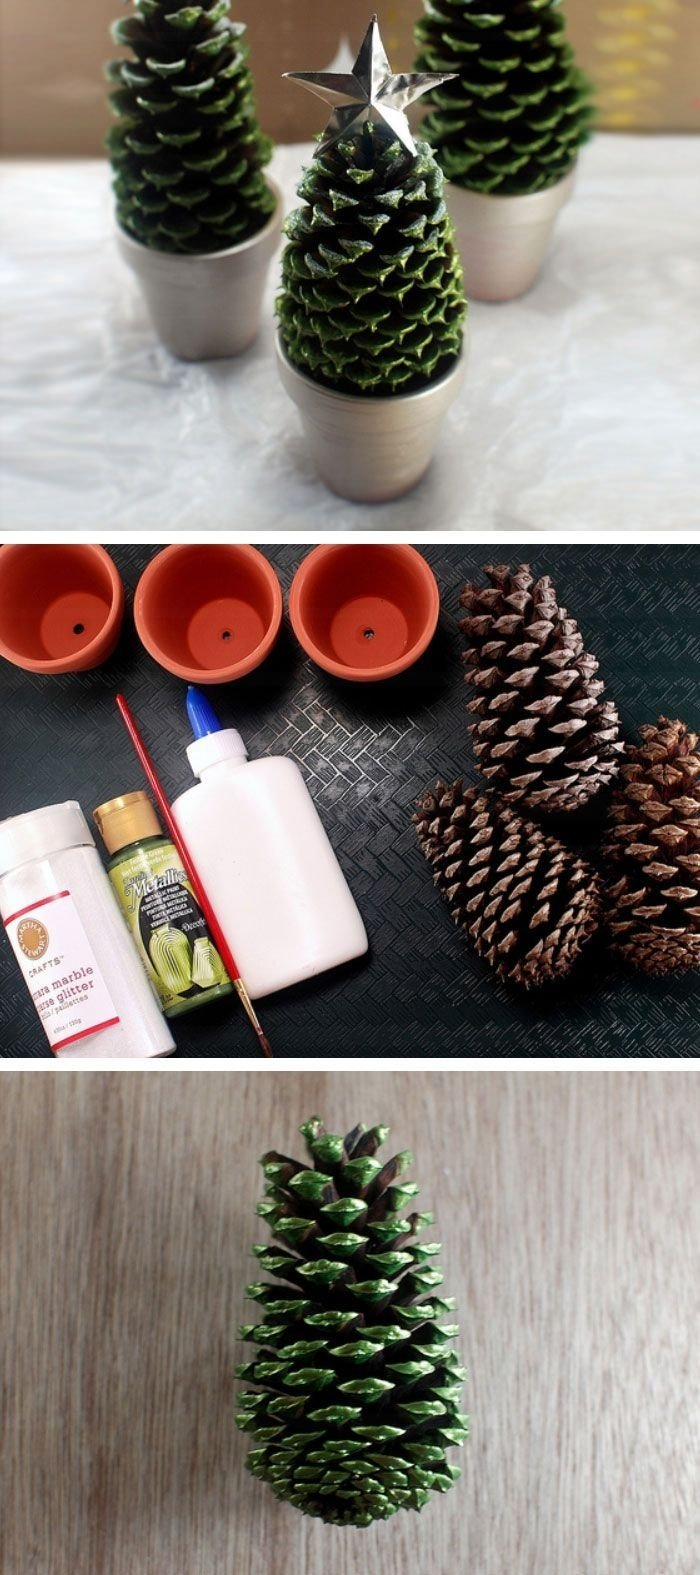 10 Unique Holiday Decorating Ideas On A Budget pine cone christmas trees click pic for 22 diy christmas decor 2020